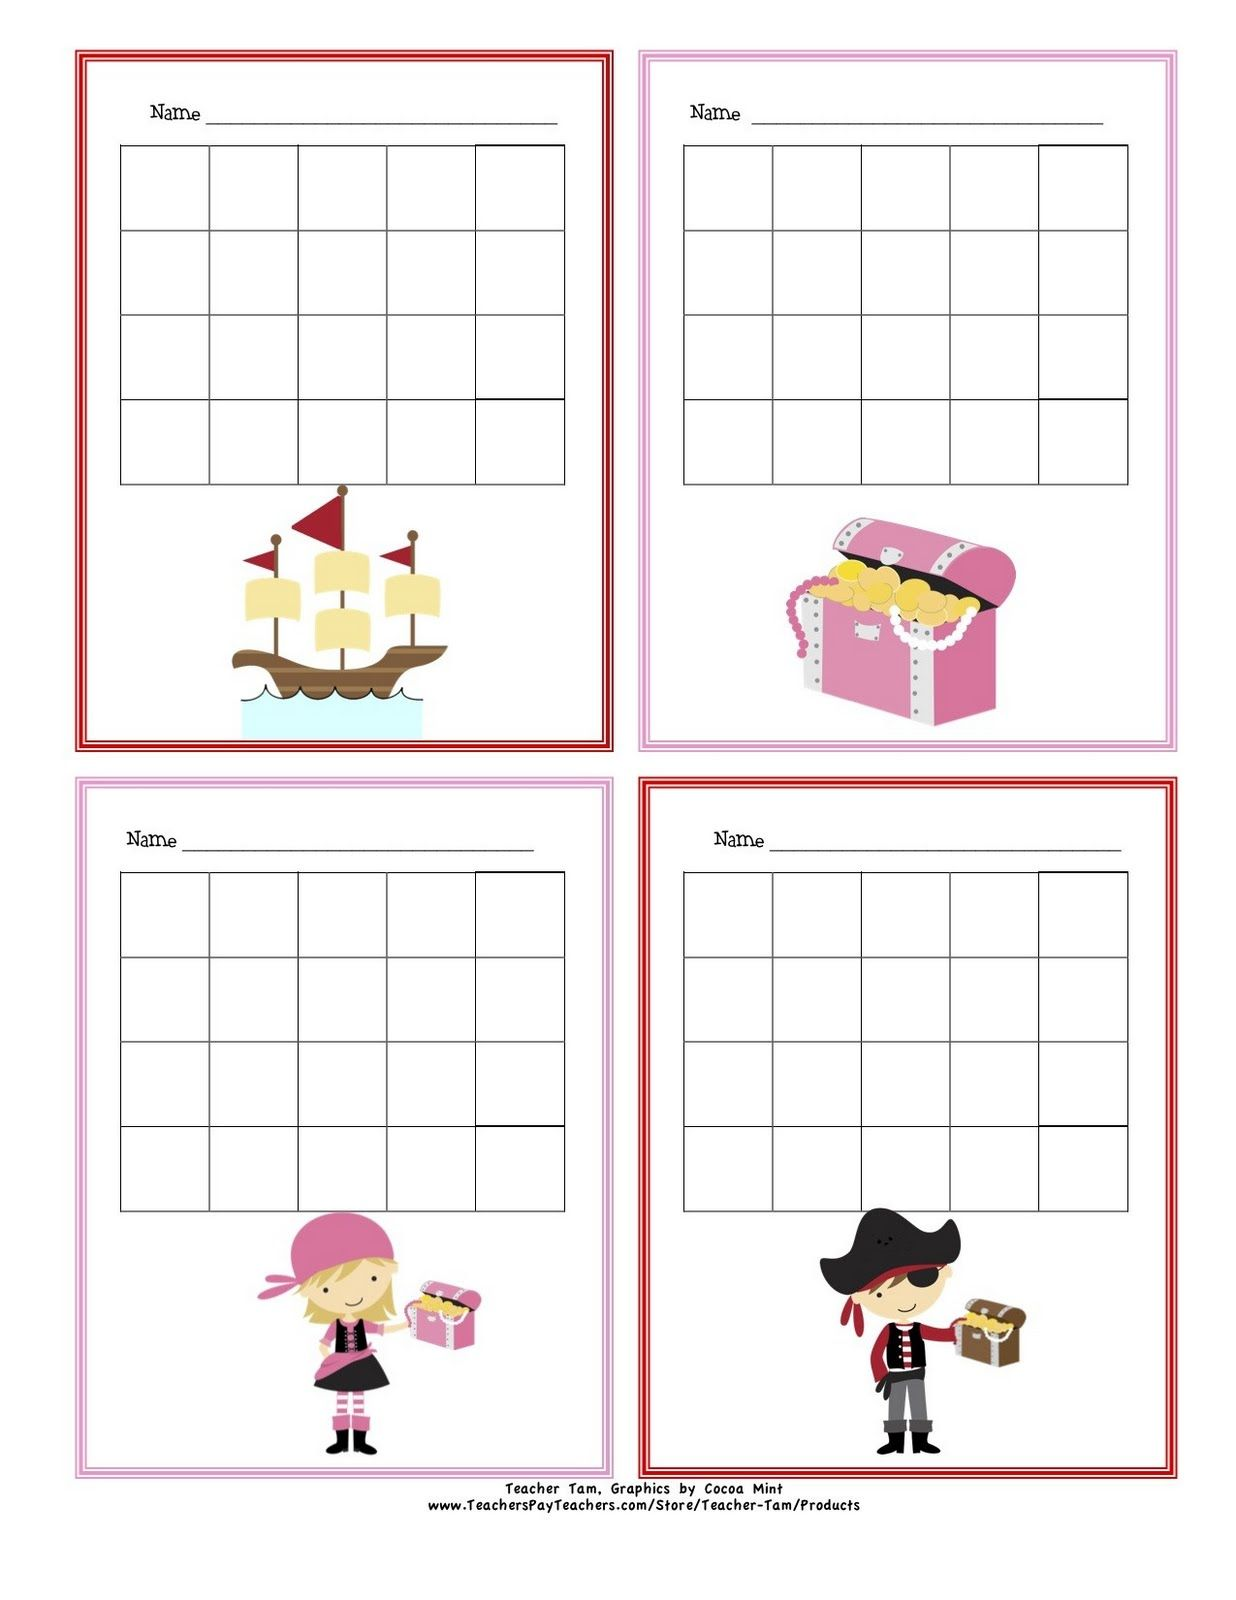 image about Free Printable Sticker Charts identify cost-free printable sticker charts jungle topic - Google Seem